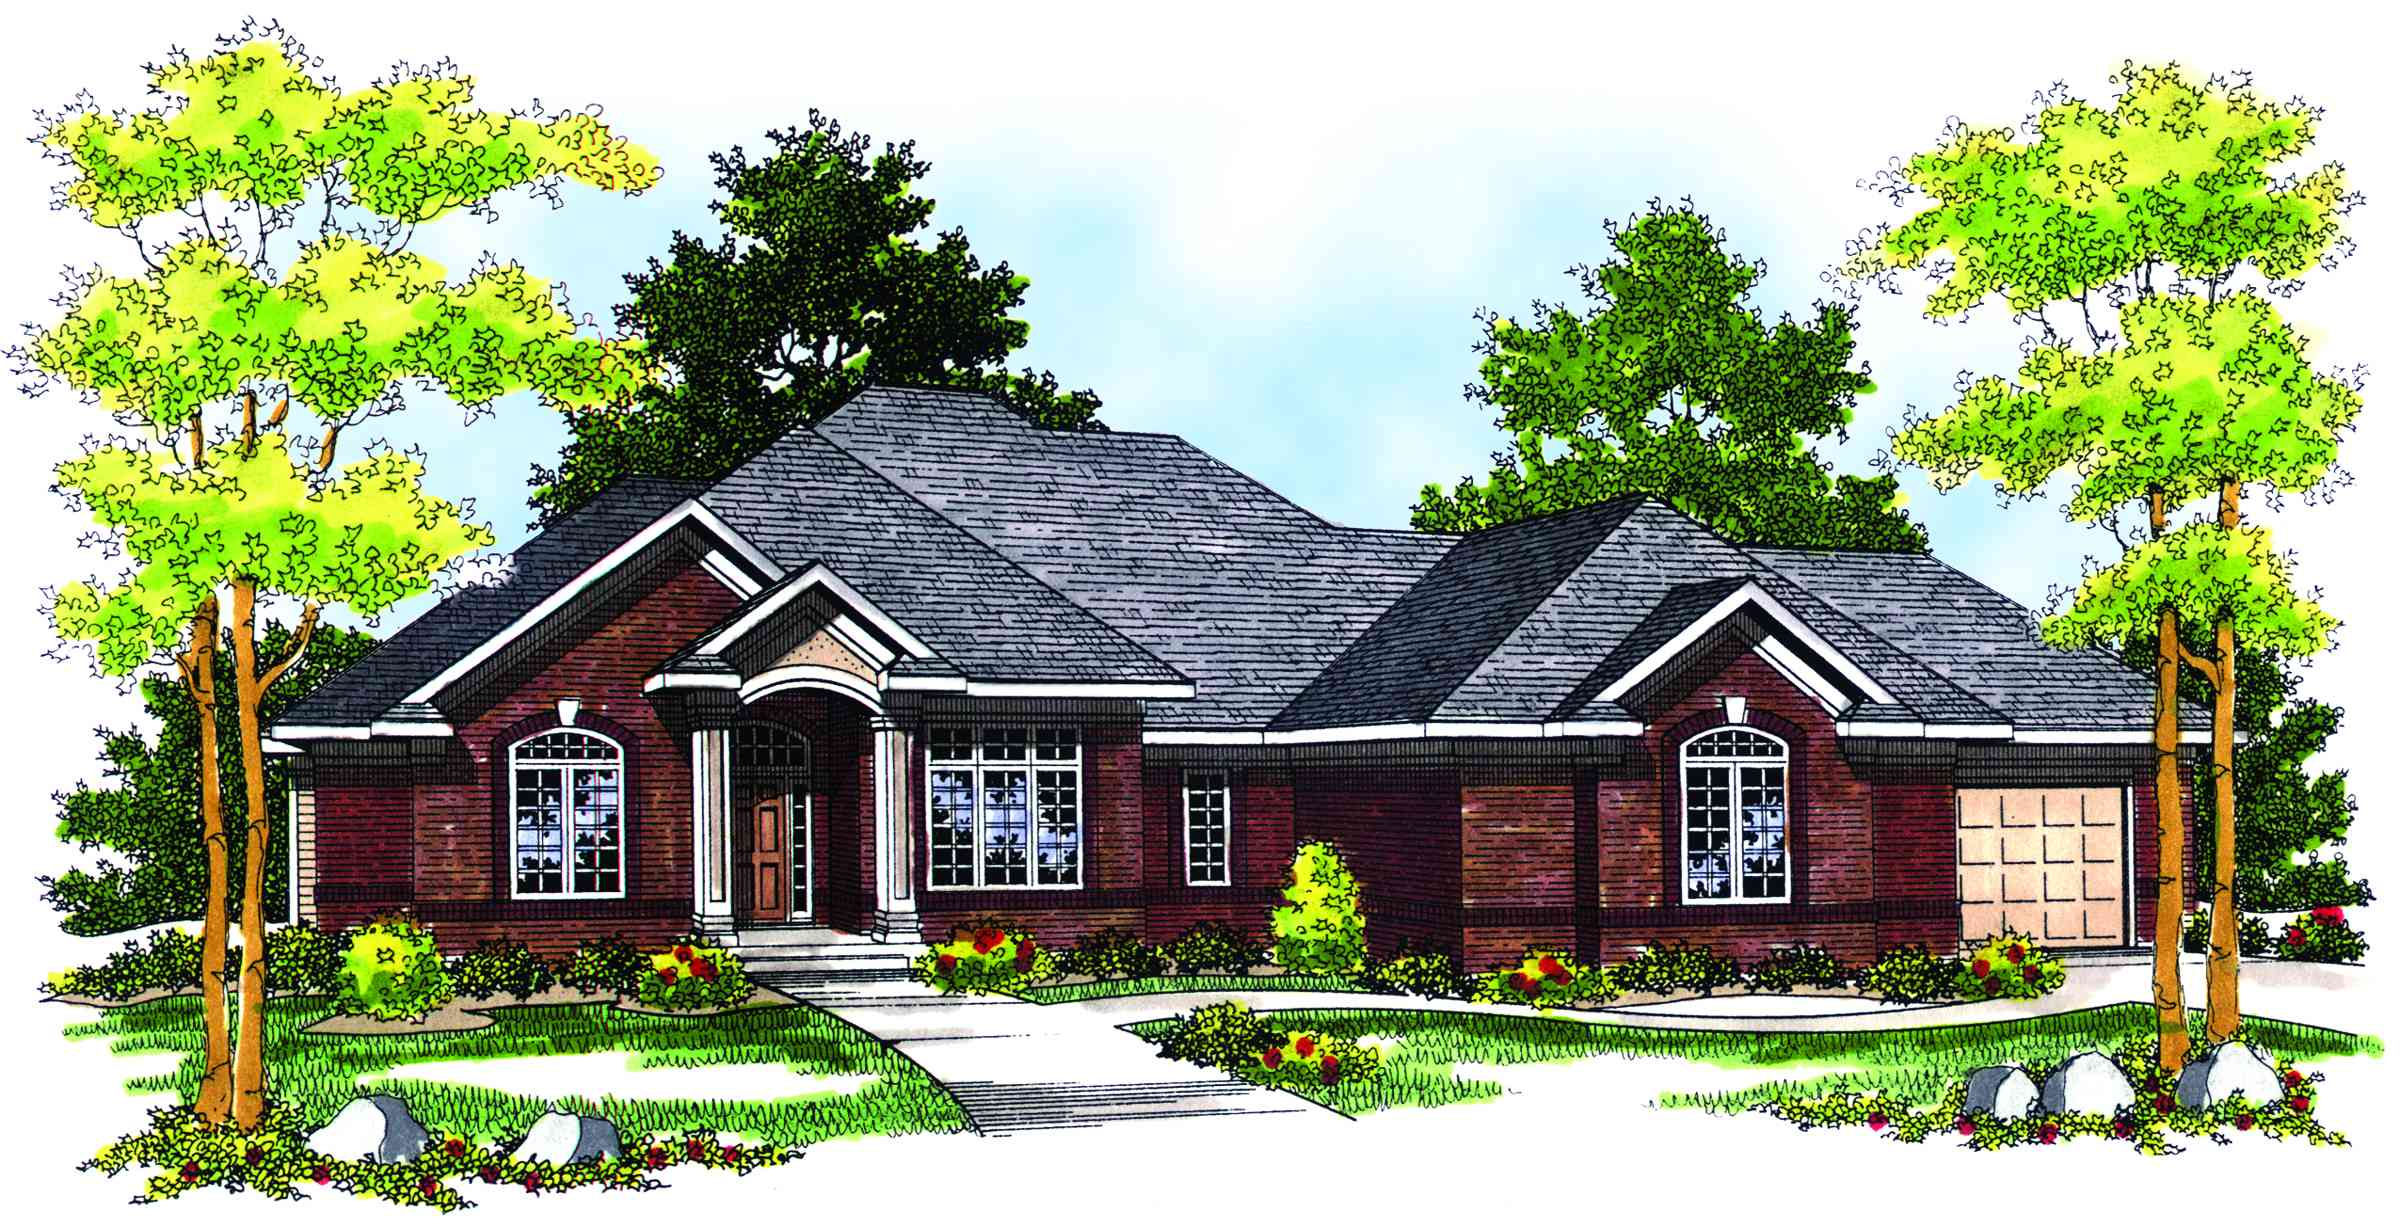 Traditional ranch style home plan 89133ah for Traditional ranch house